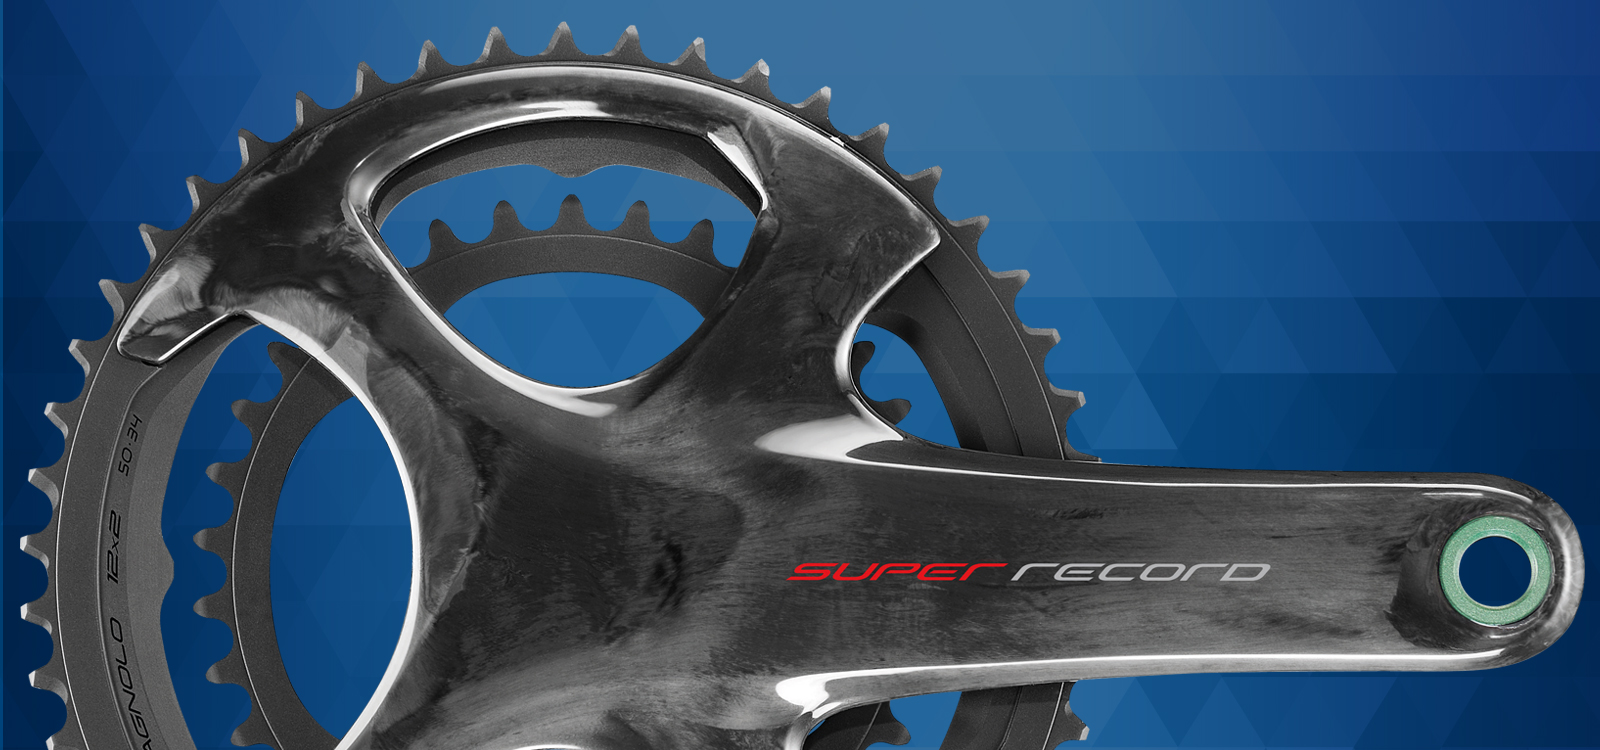 Super Record 12x2 Speed crankset - banner